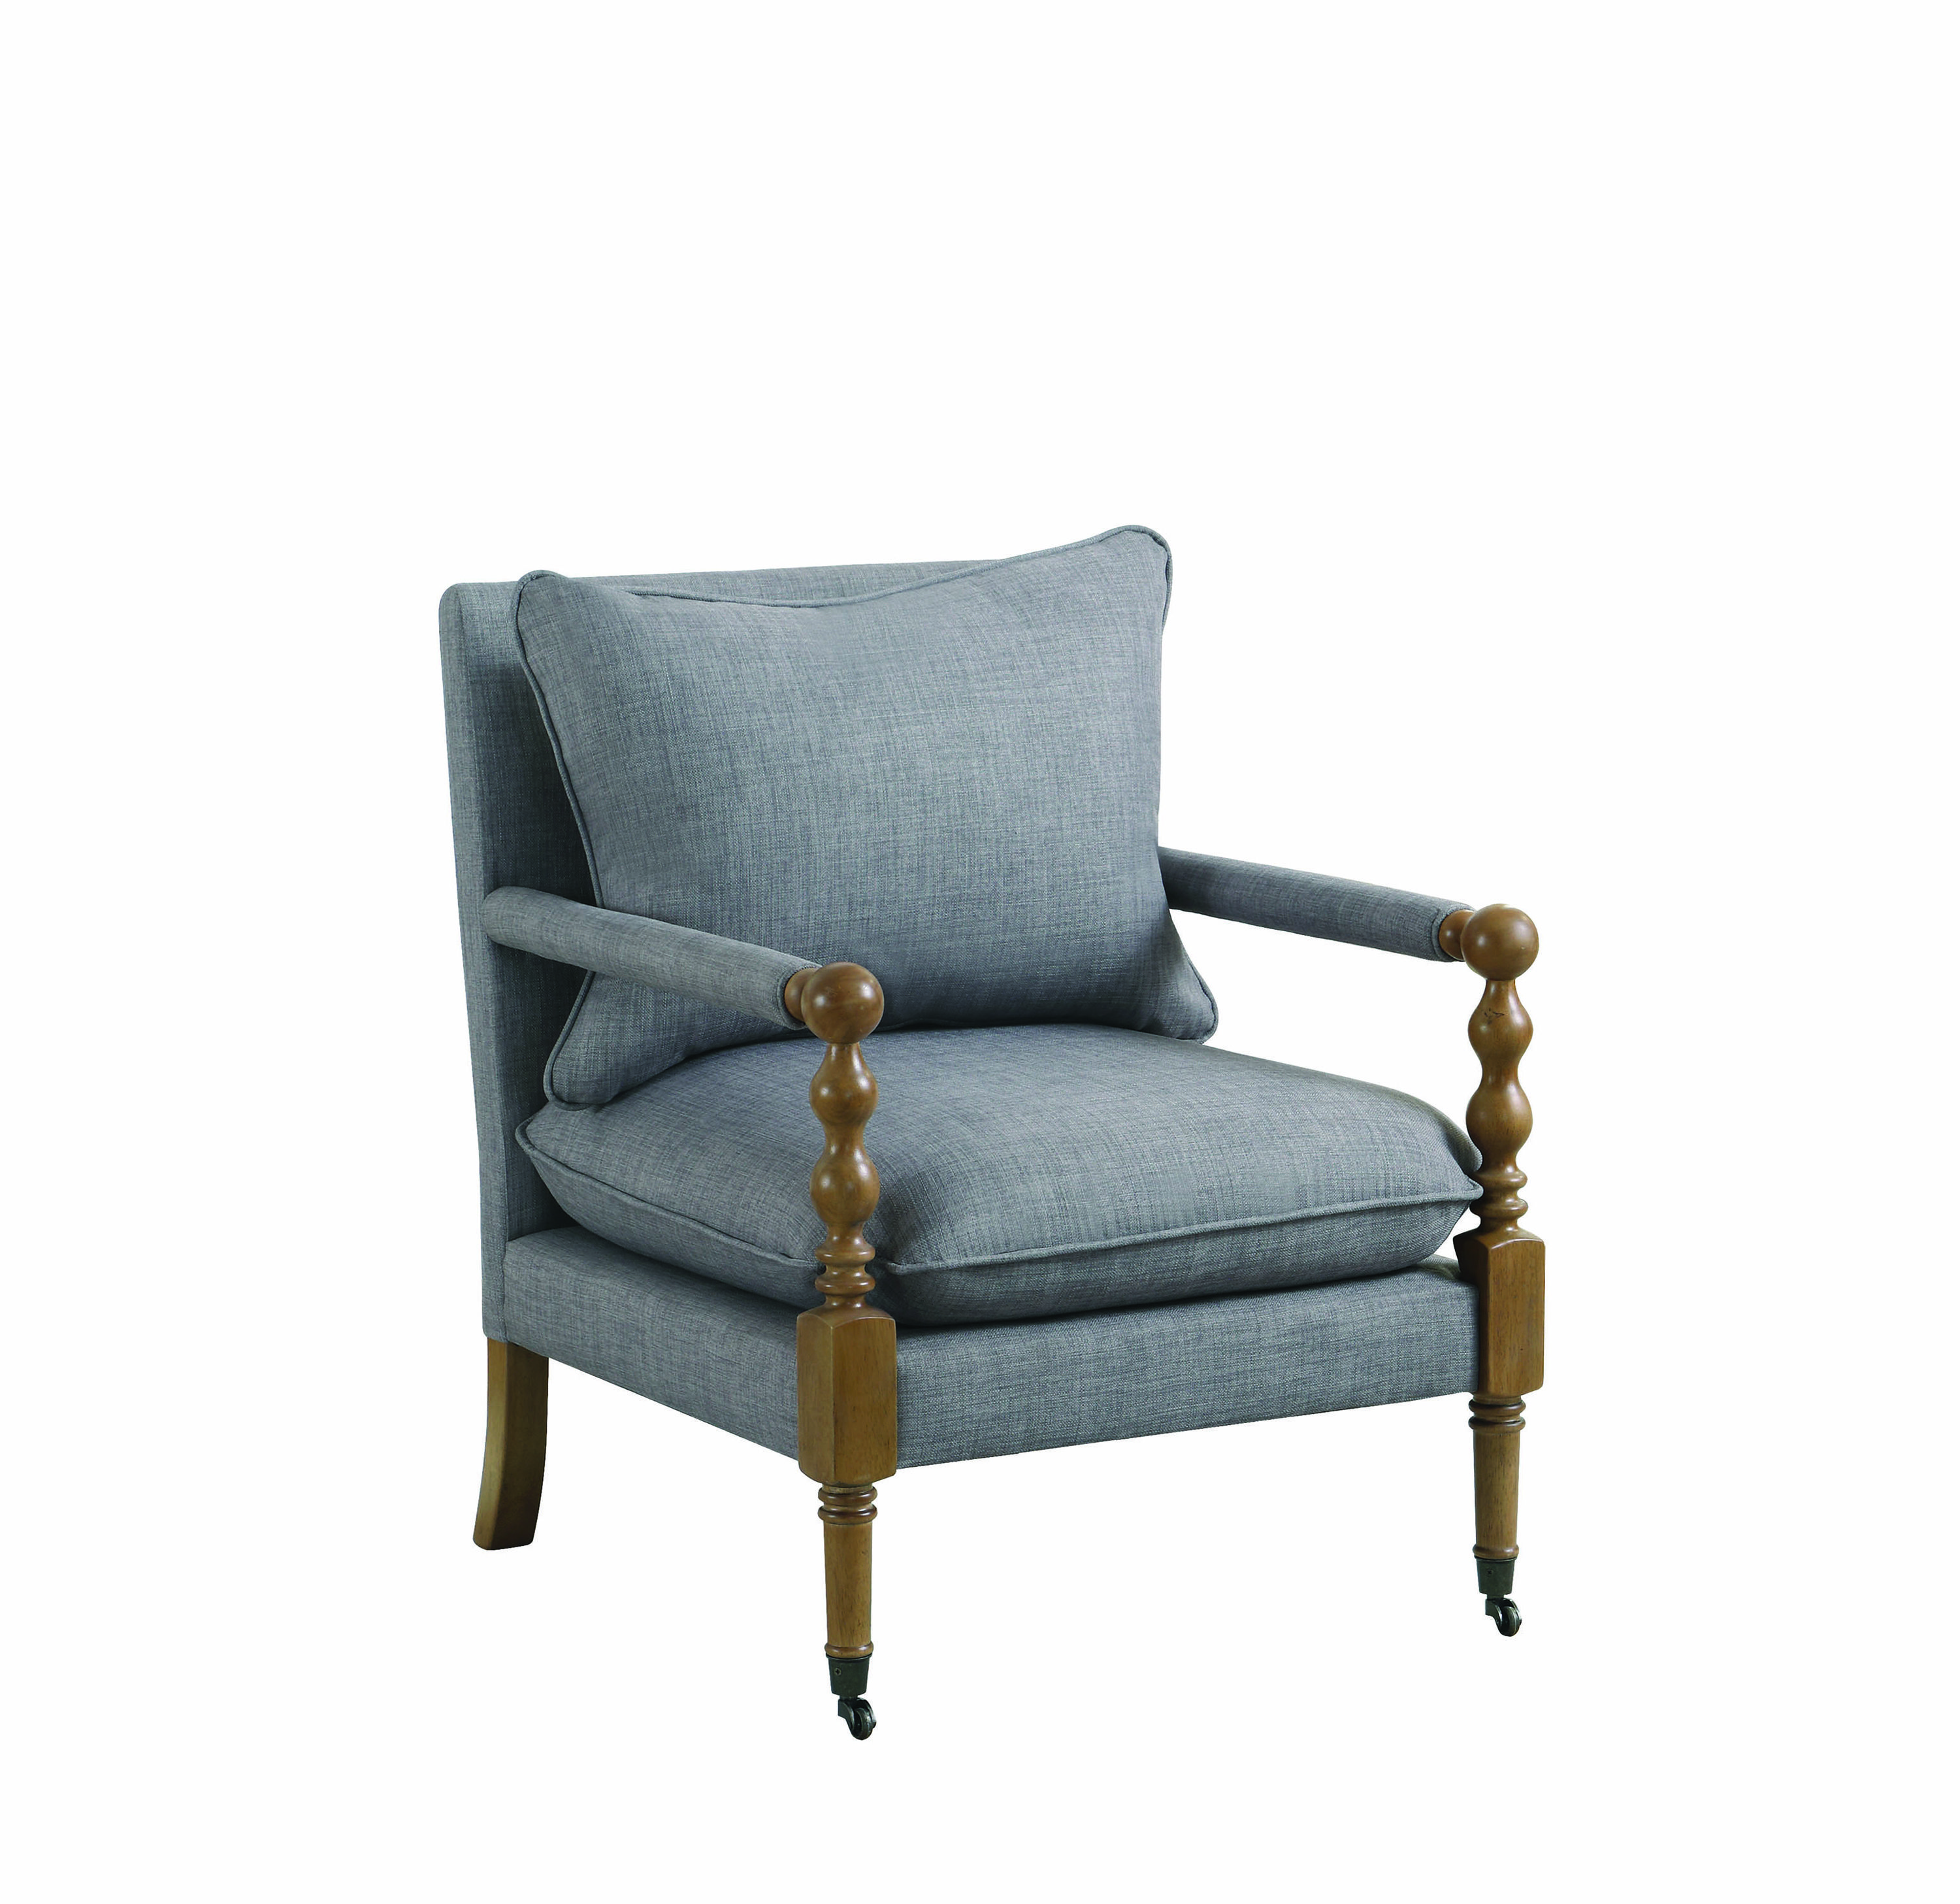 From One Of Jordan S Companies Upholstered Accent Chair Grey